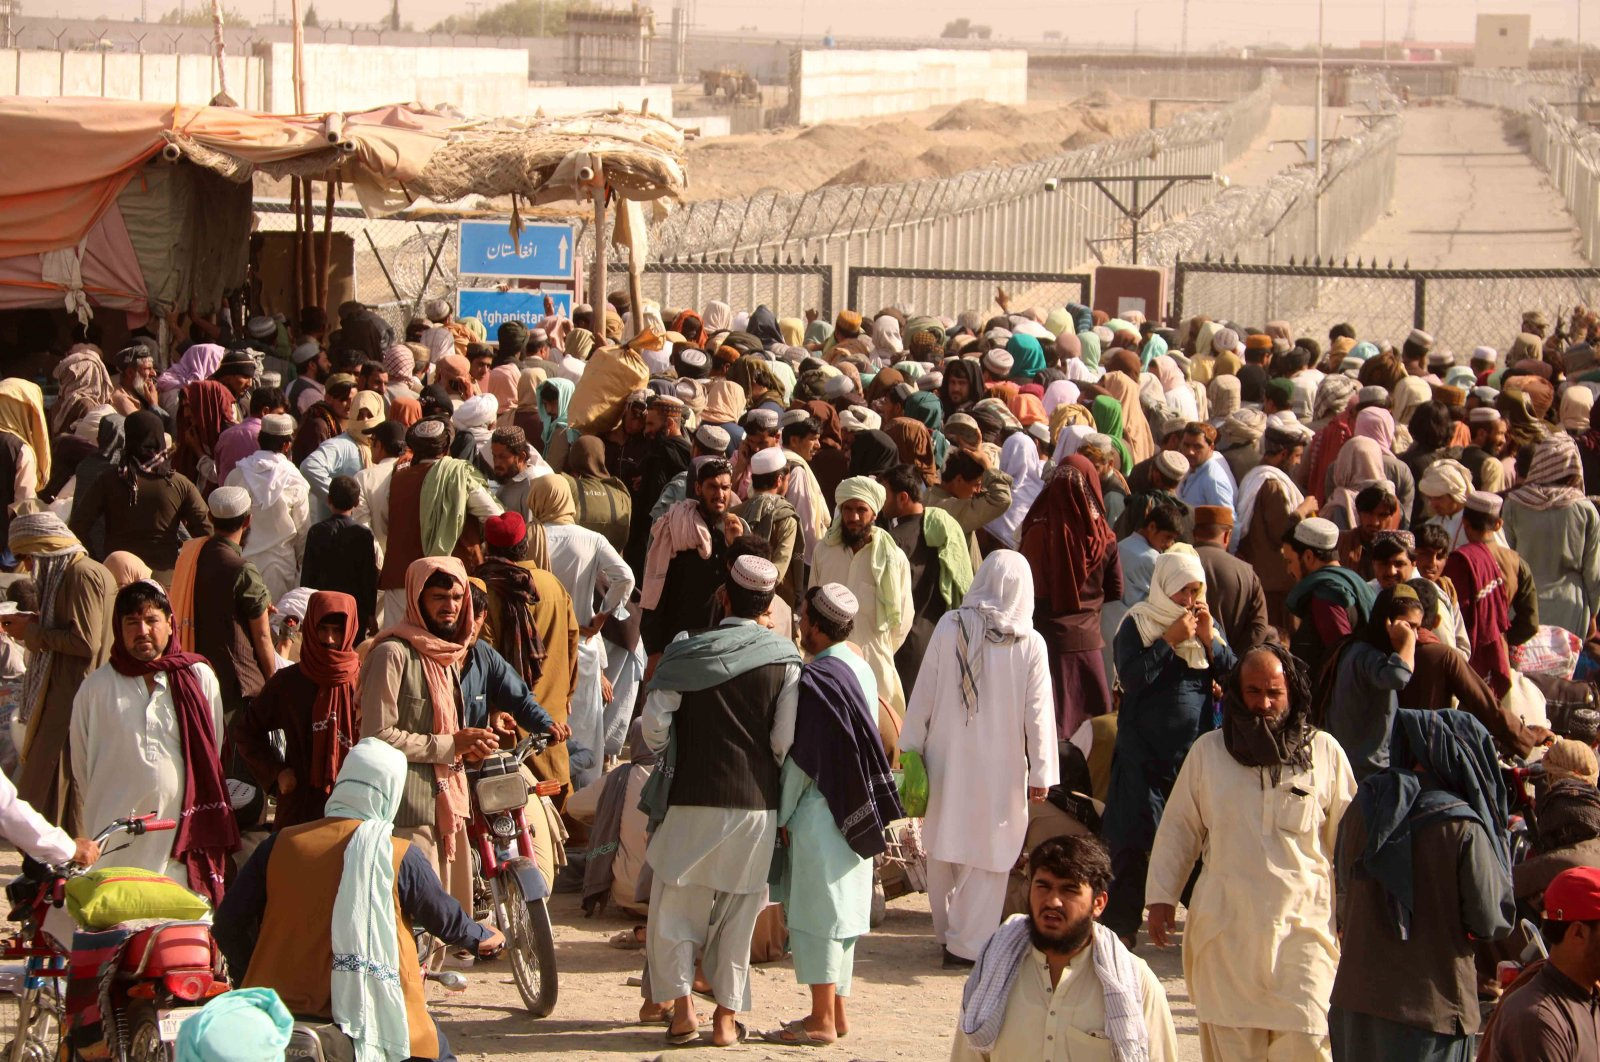 People stranded at the Pakistani-Afghan border wait for its reopening after it was closed by the Taliban, who have taken over the control of the Afghan side of the border at Chaman, Pakistan, Aug. 11, 2021. (EPA Photo)